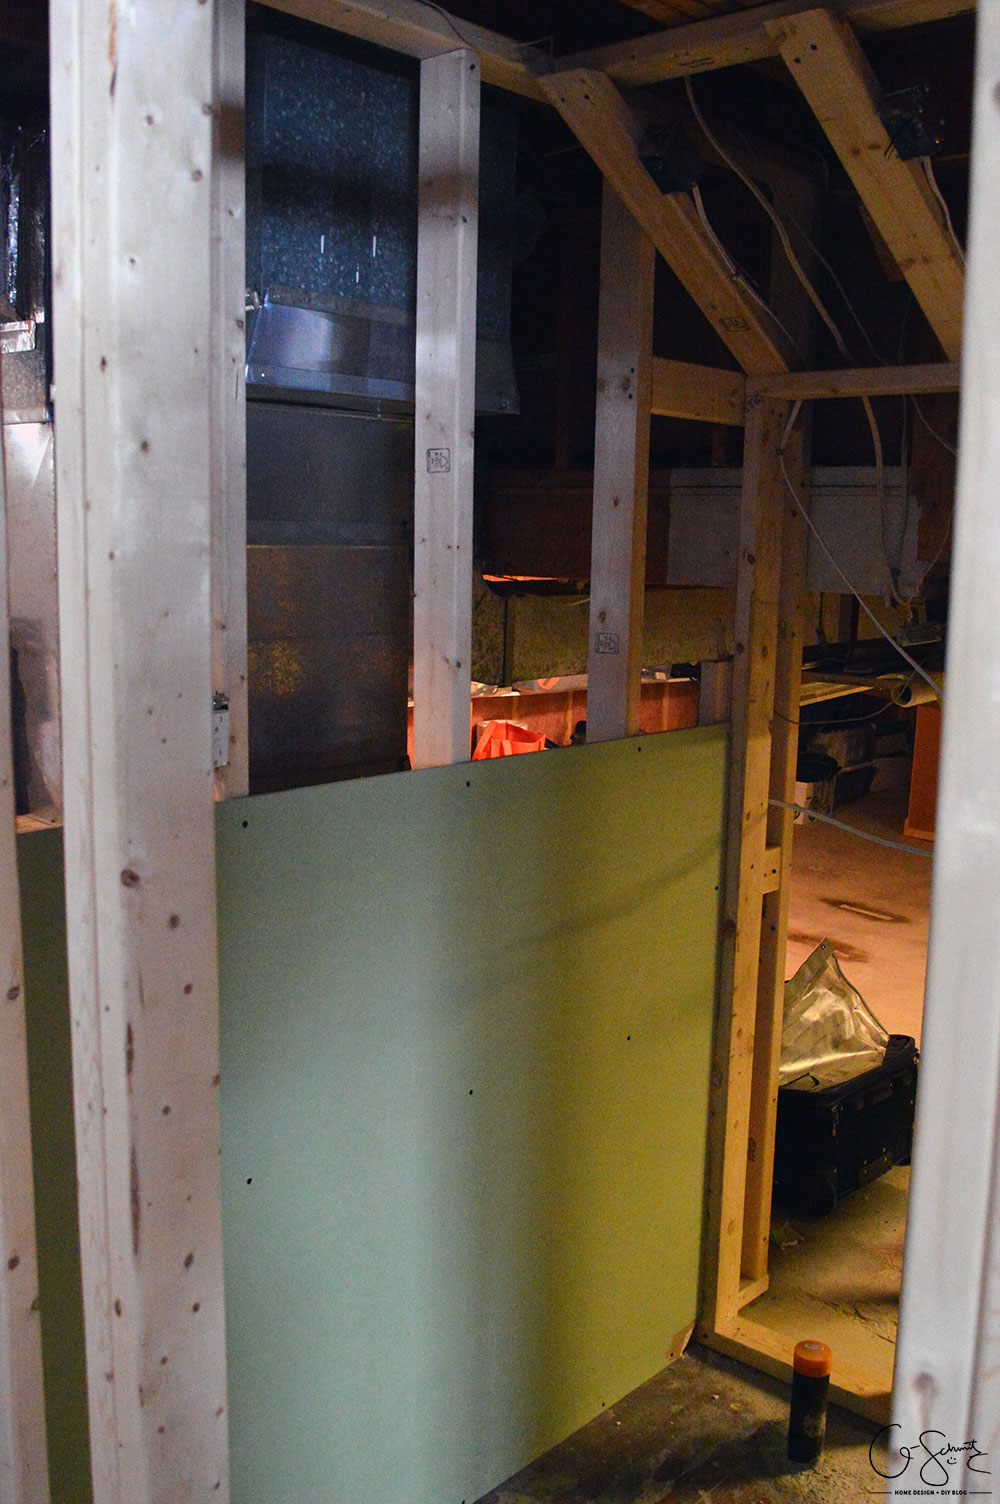 In-progress pictures from the ORC basement bathroom framing + plumbing, and a look at some design options for square flushmount lights.